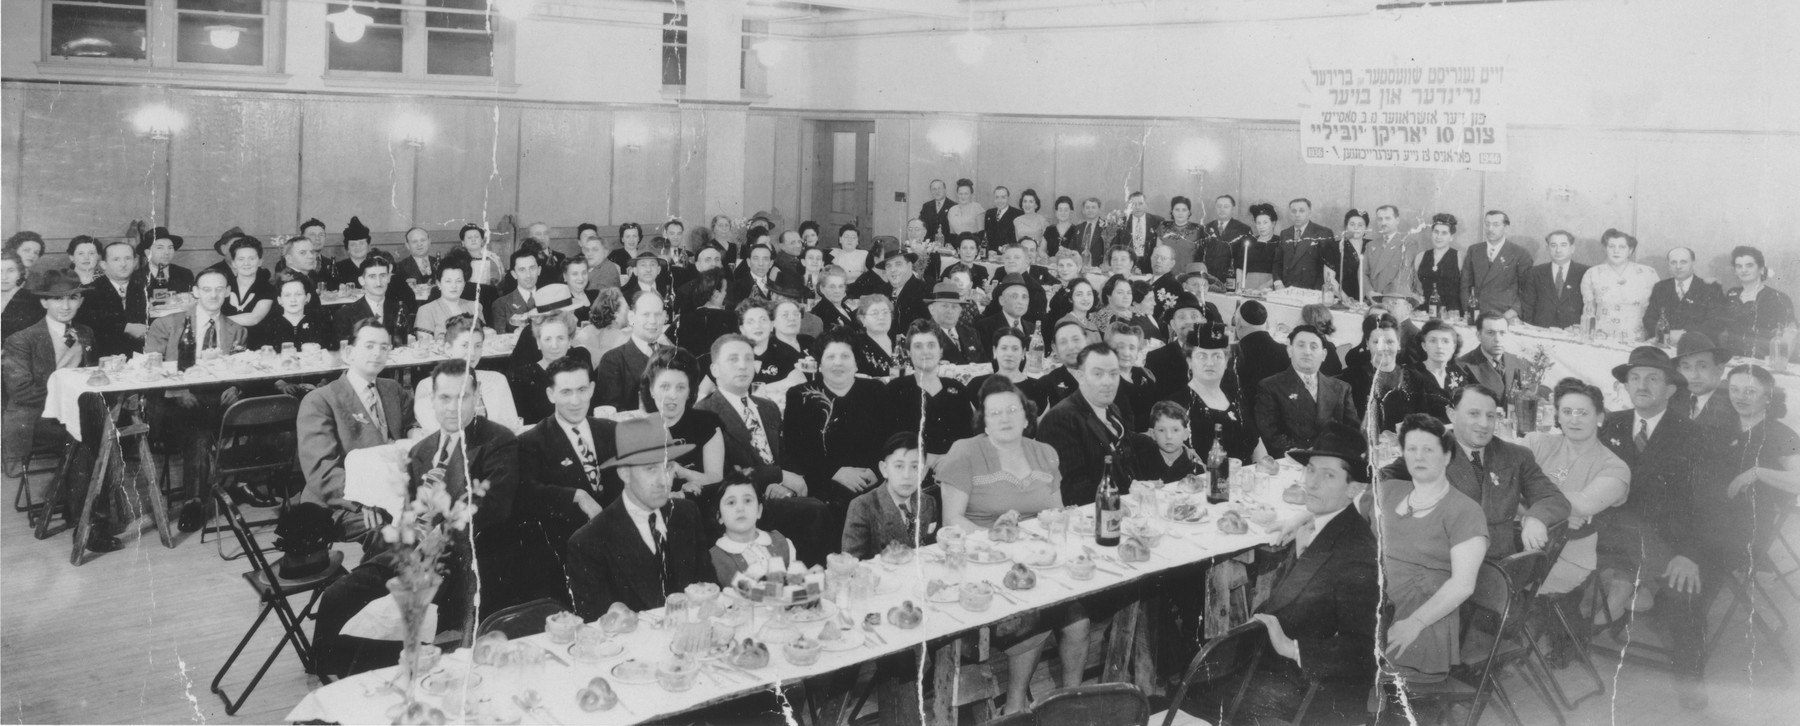 Jewish immigrants to Canada from Ozarow, Poland attend a banquet in Toronto in celebration of the tenth anniversary of the Ozarow society.